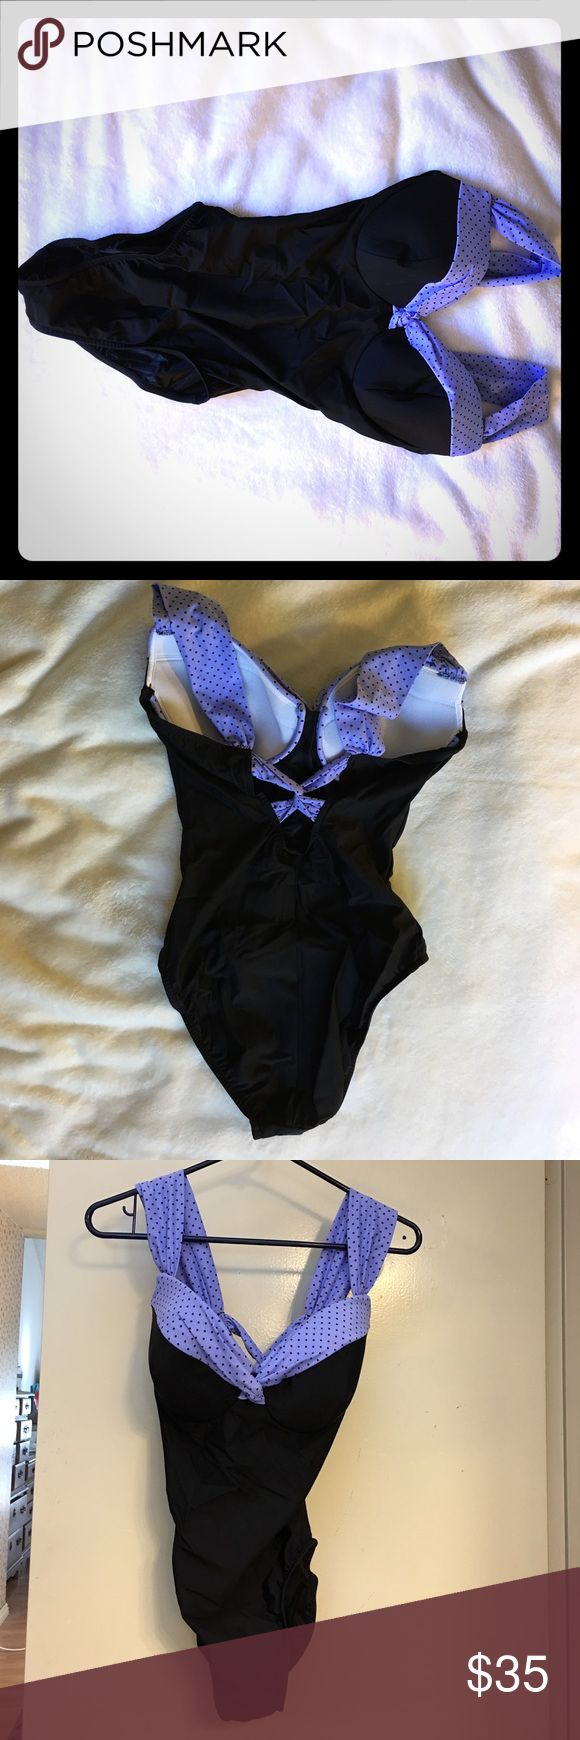 NWT Trimshaper D cup underwire swimsuit Brand new Trimshaper D cup underwire swimsuit, 3 available, made in USA Trimshaper Swim One Pieces